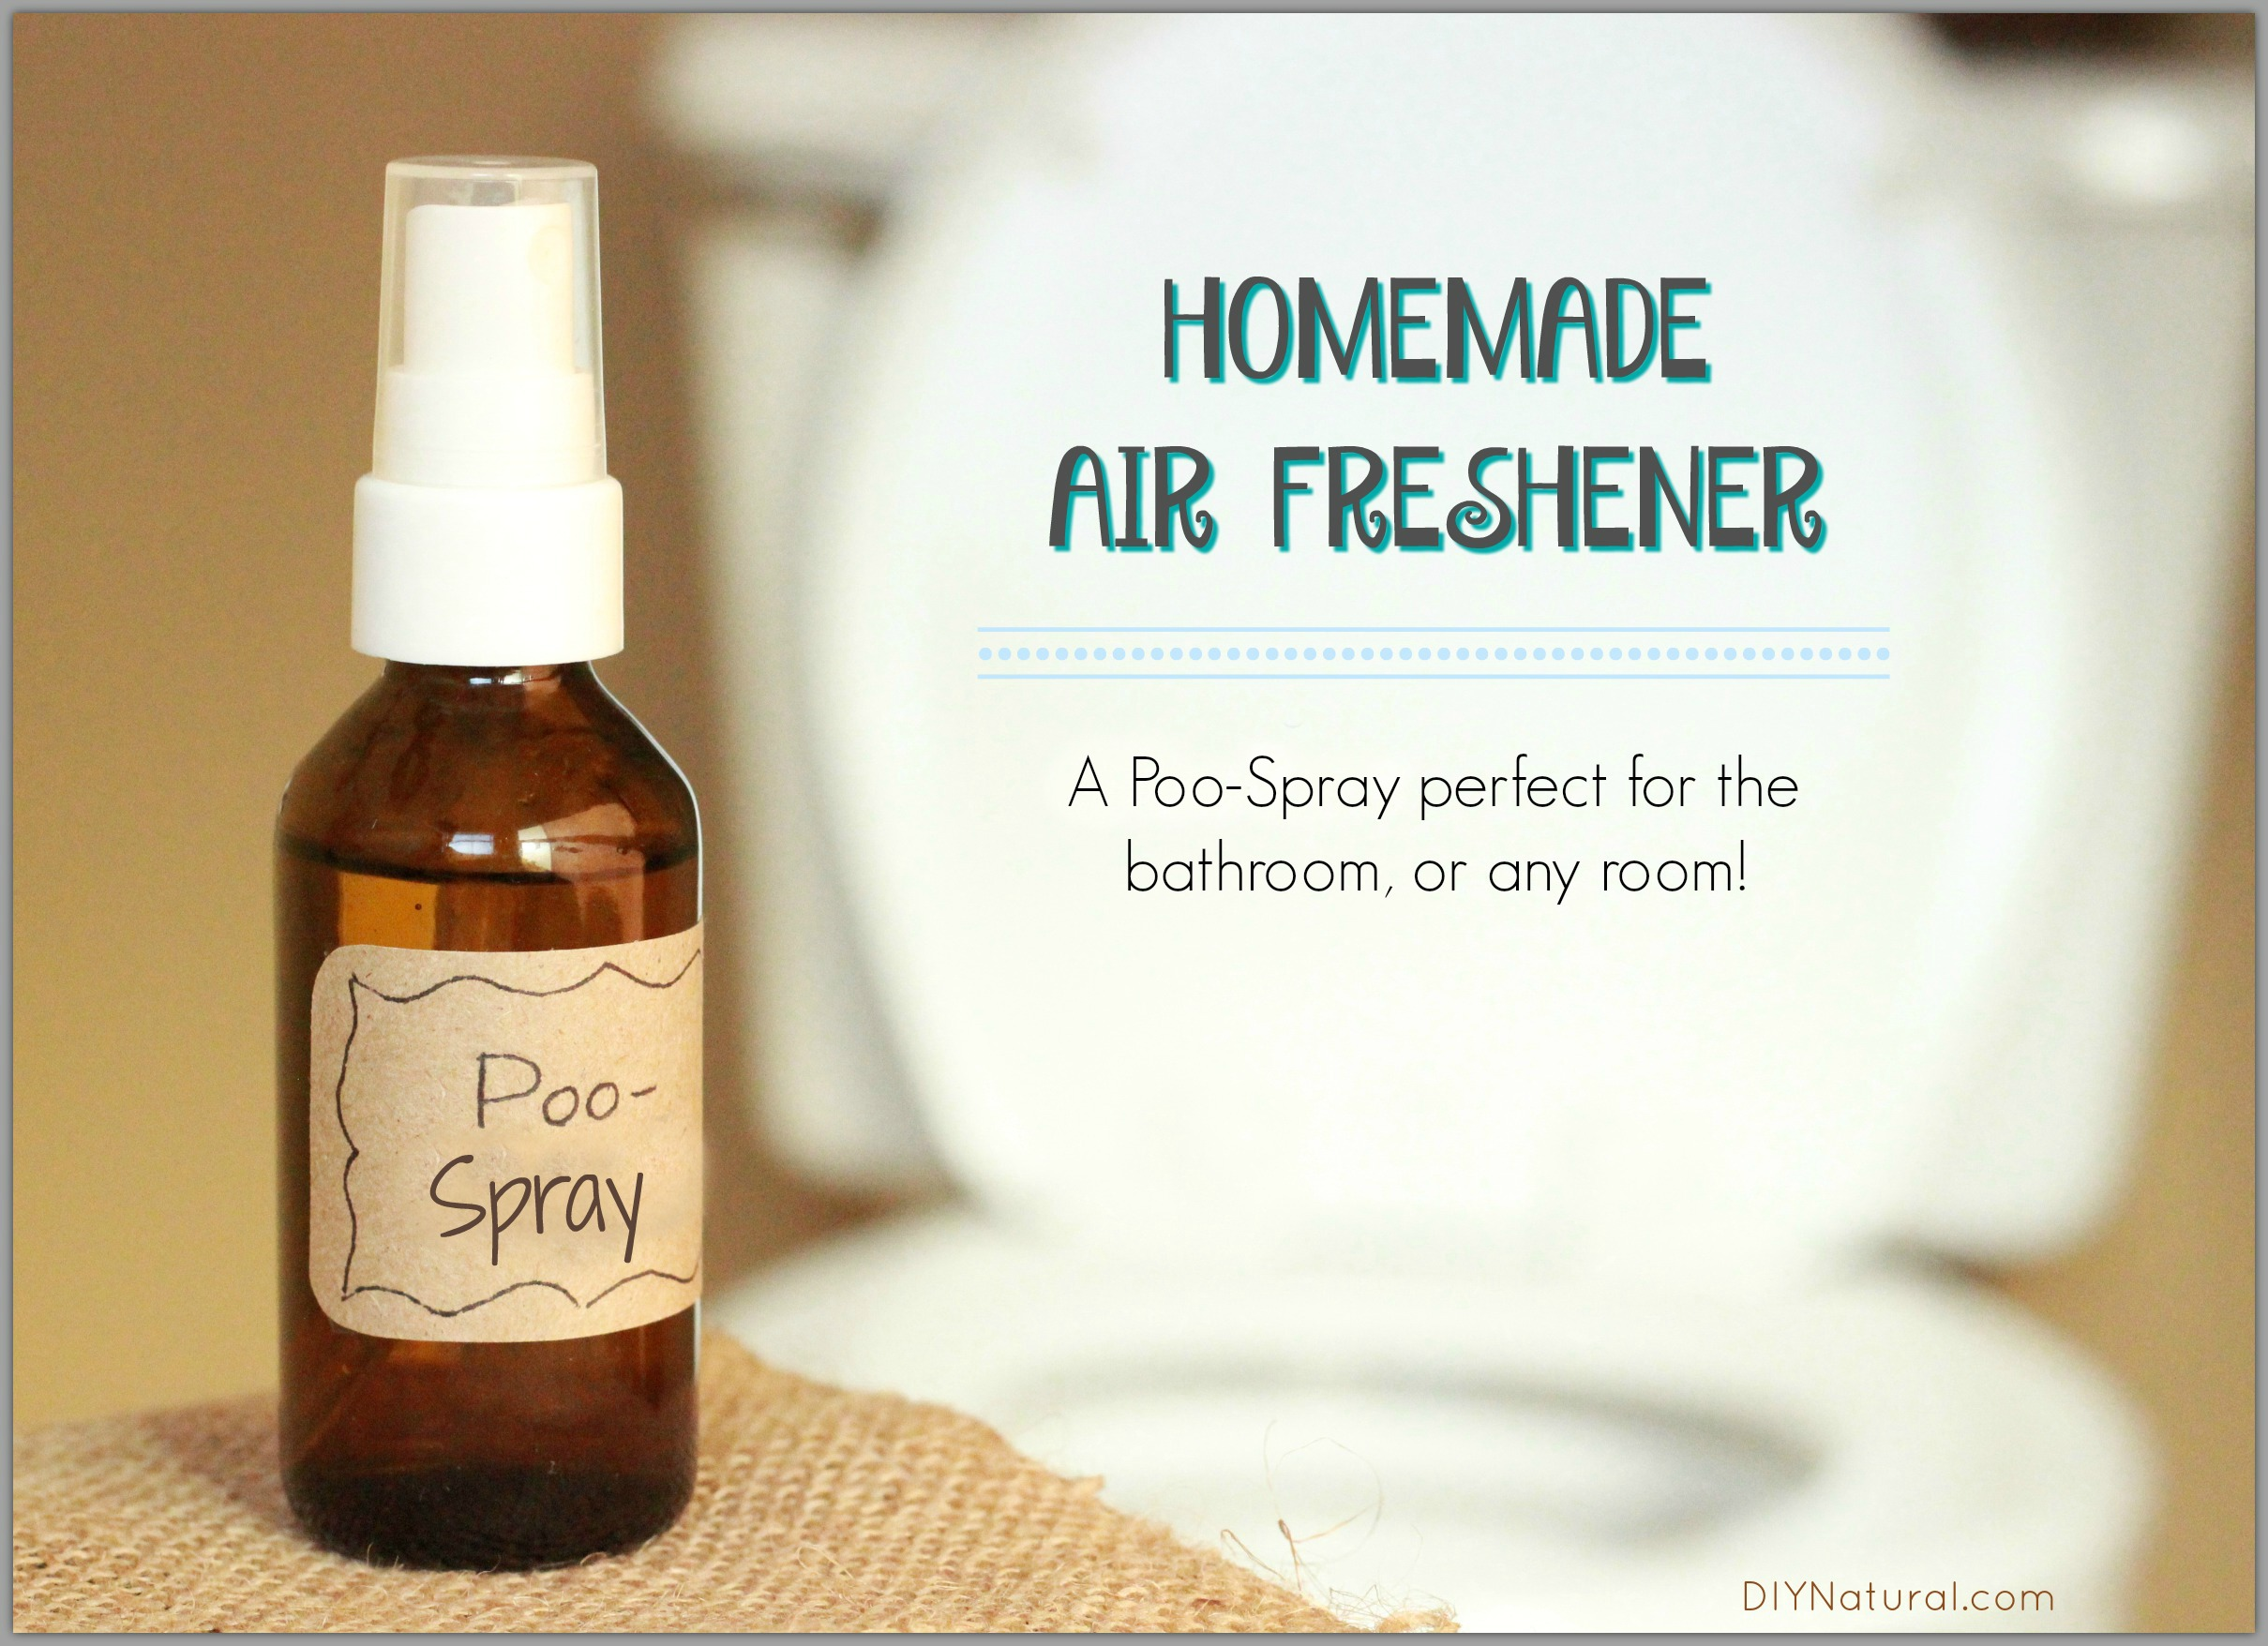 Homemade air freshener a natural diy poo spray - Natural air freshener for bathroom ...